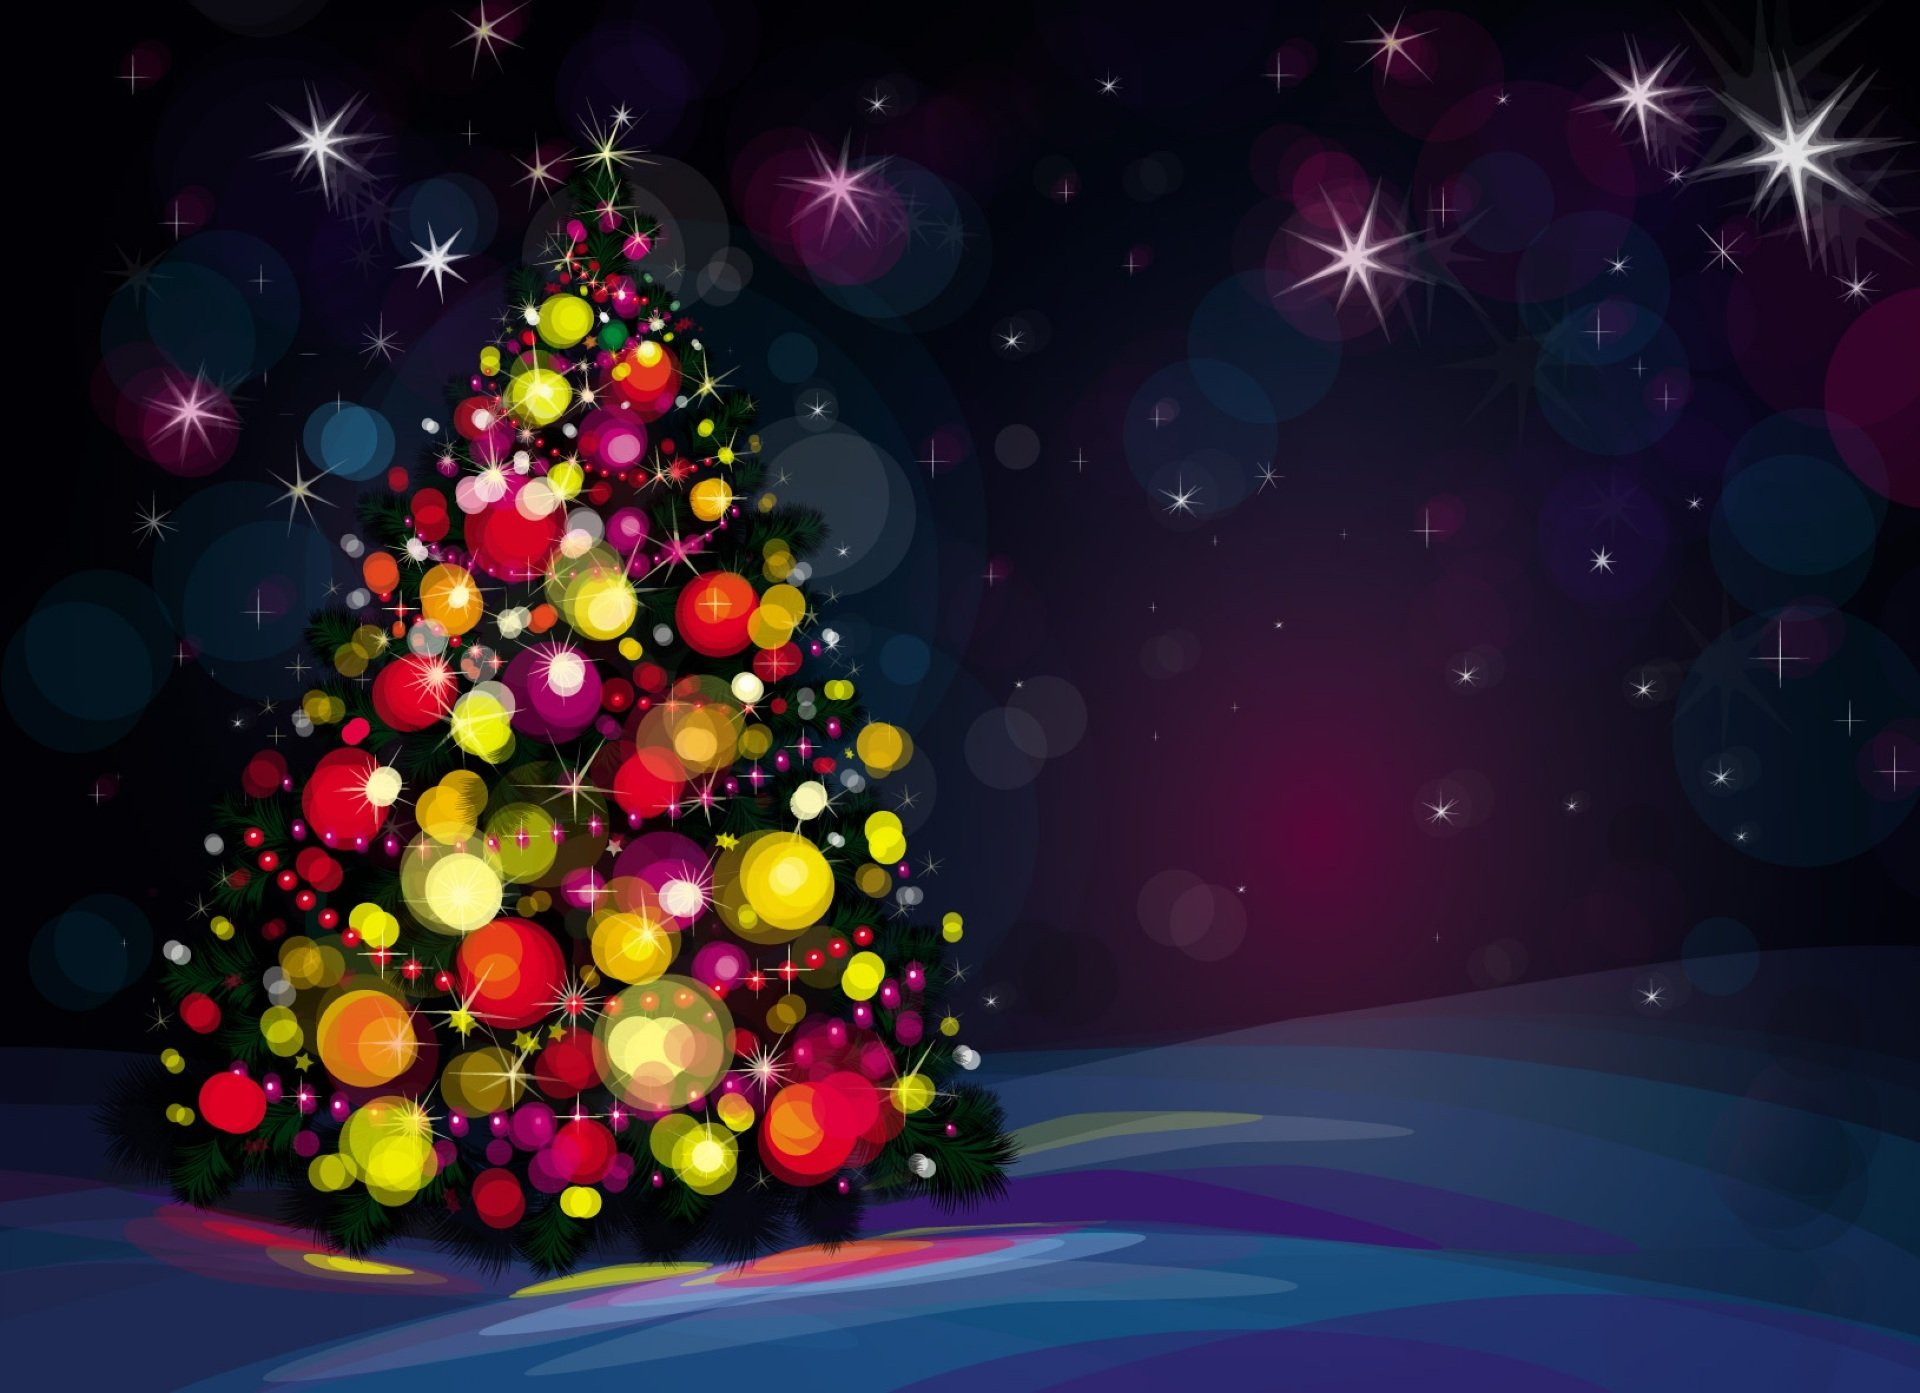 Beautiful christmas tree wallpaper - Beautiful Christmas Tree Wallpapers 10